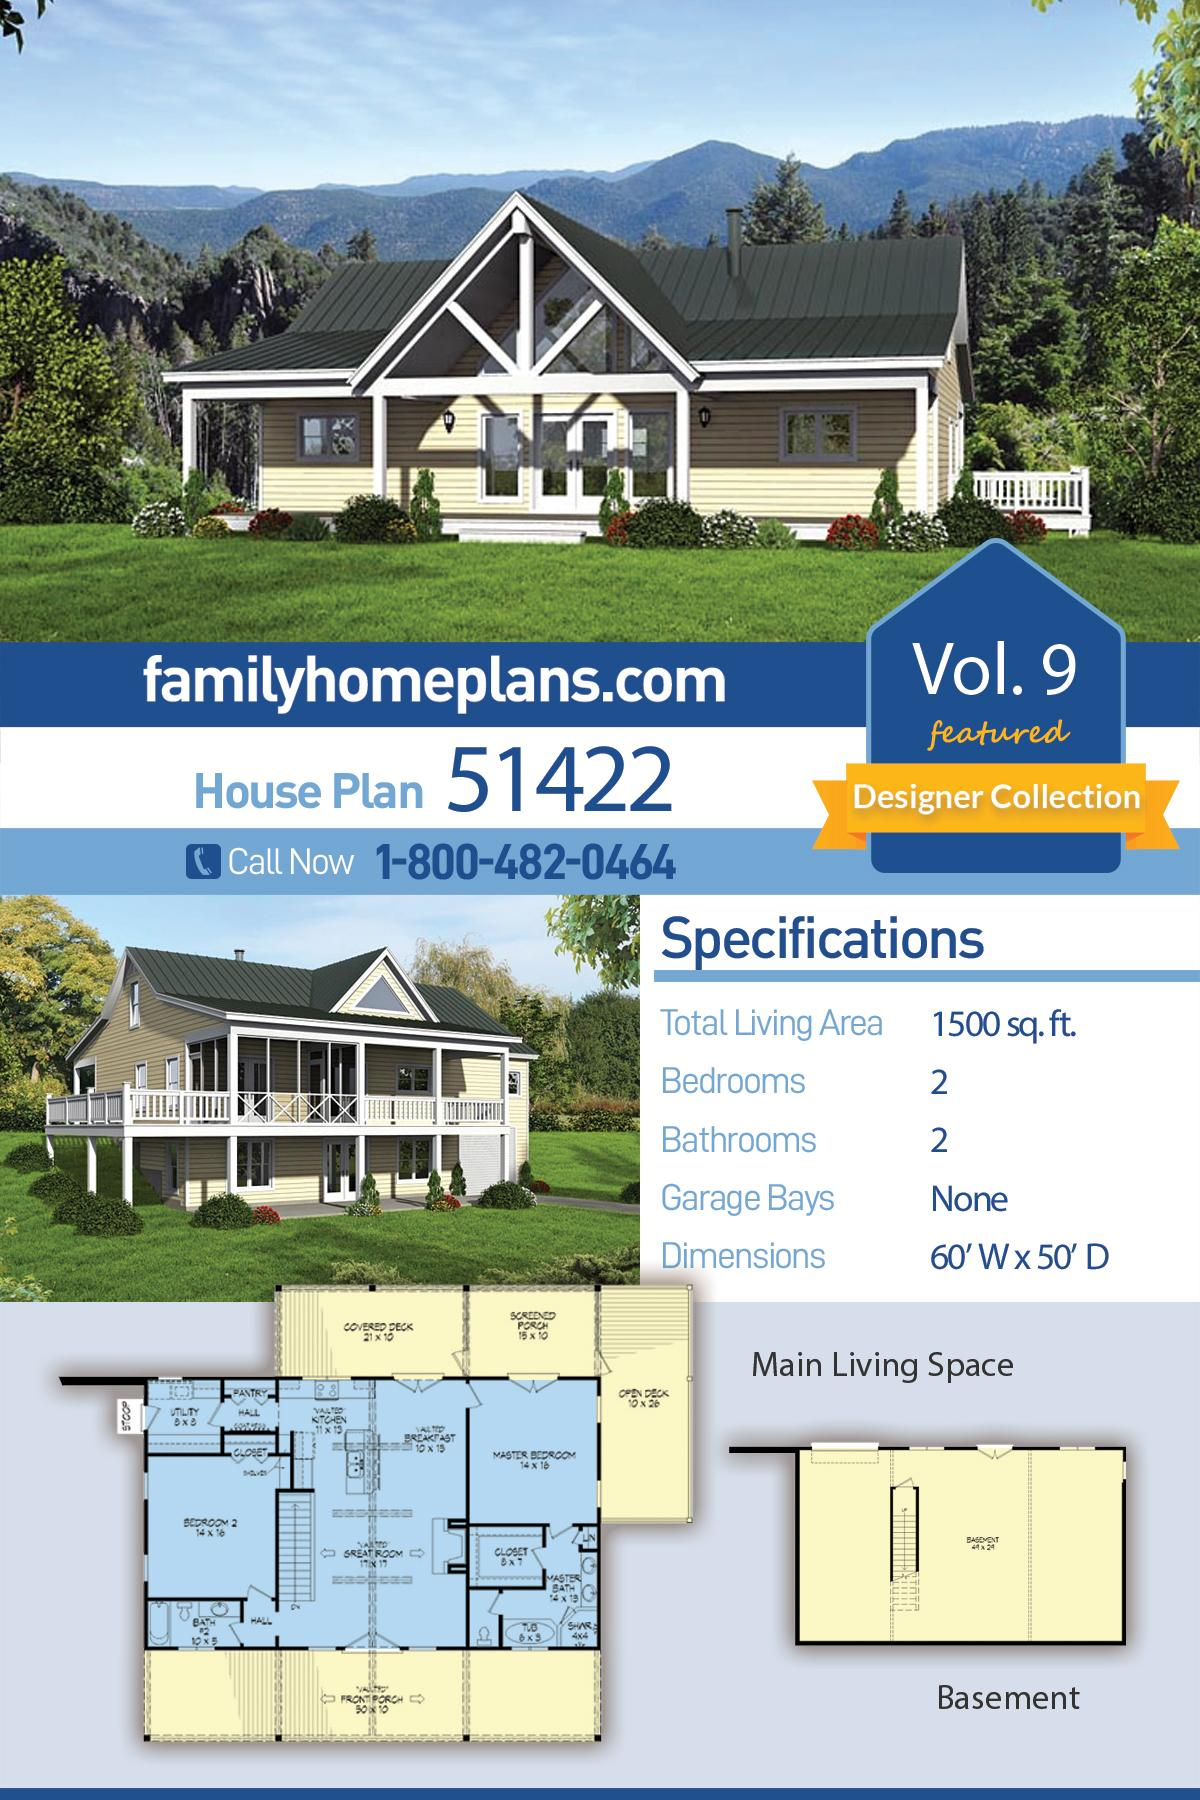 Country, Craftsman, Ranch, Traditional House Plan 51422 with 2 Beds, 2 Baths